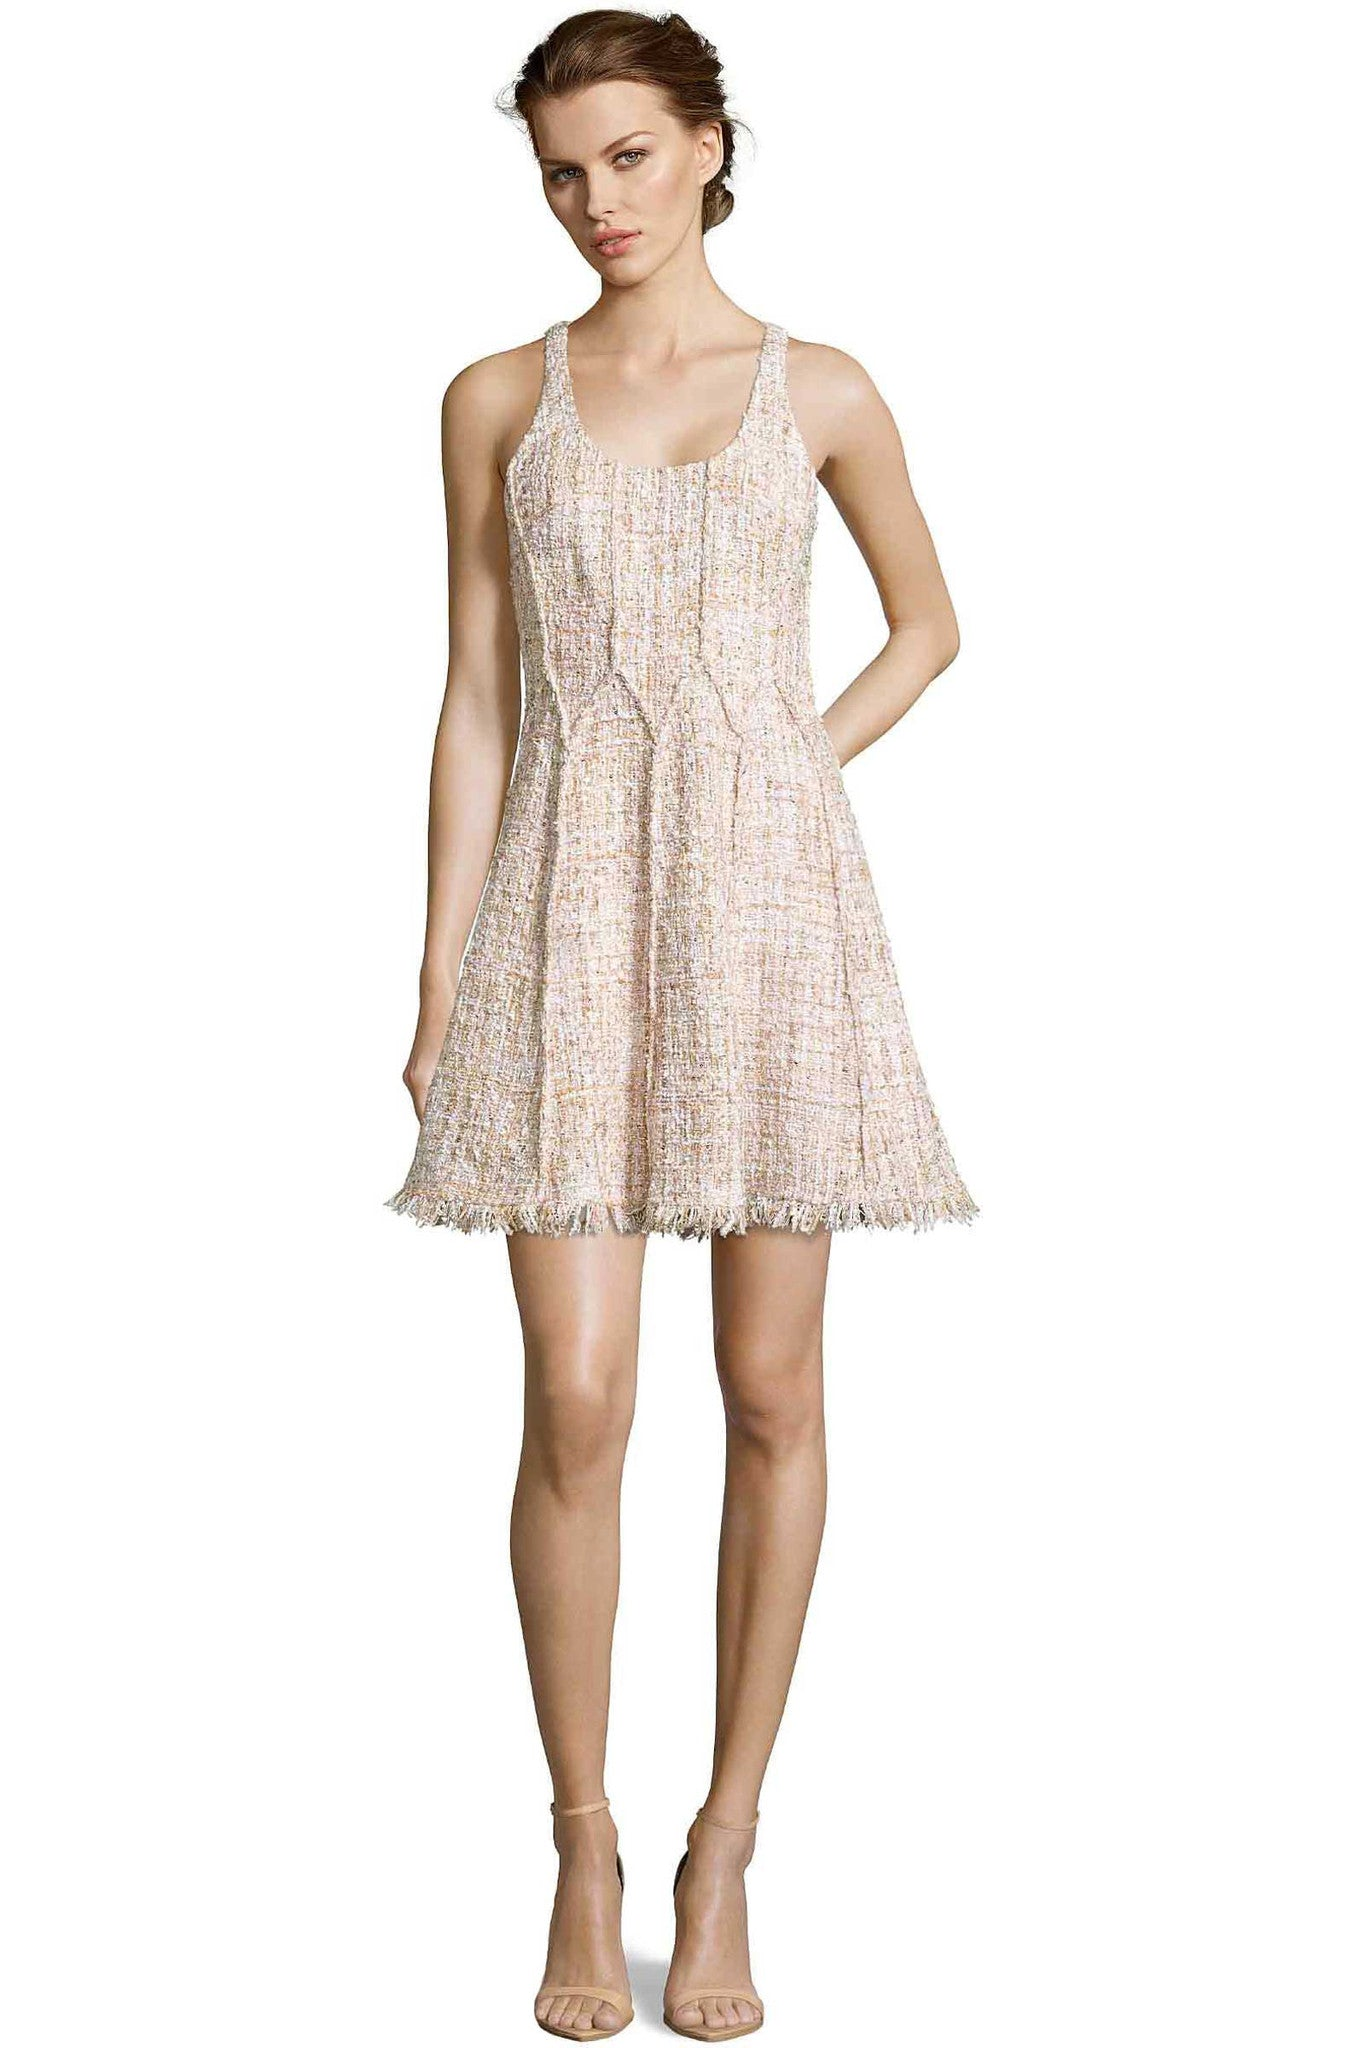 Jay Godfrey Blush Tweed Fit-and-Flare Dress - Front View